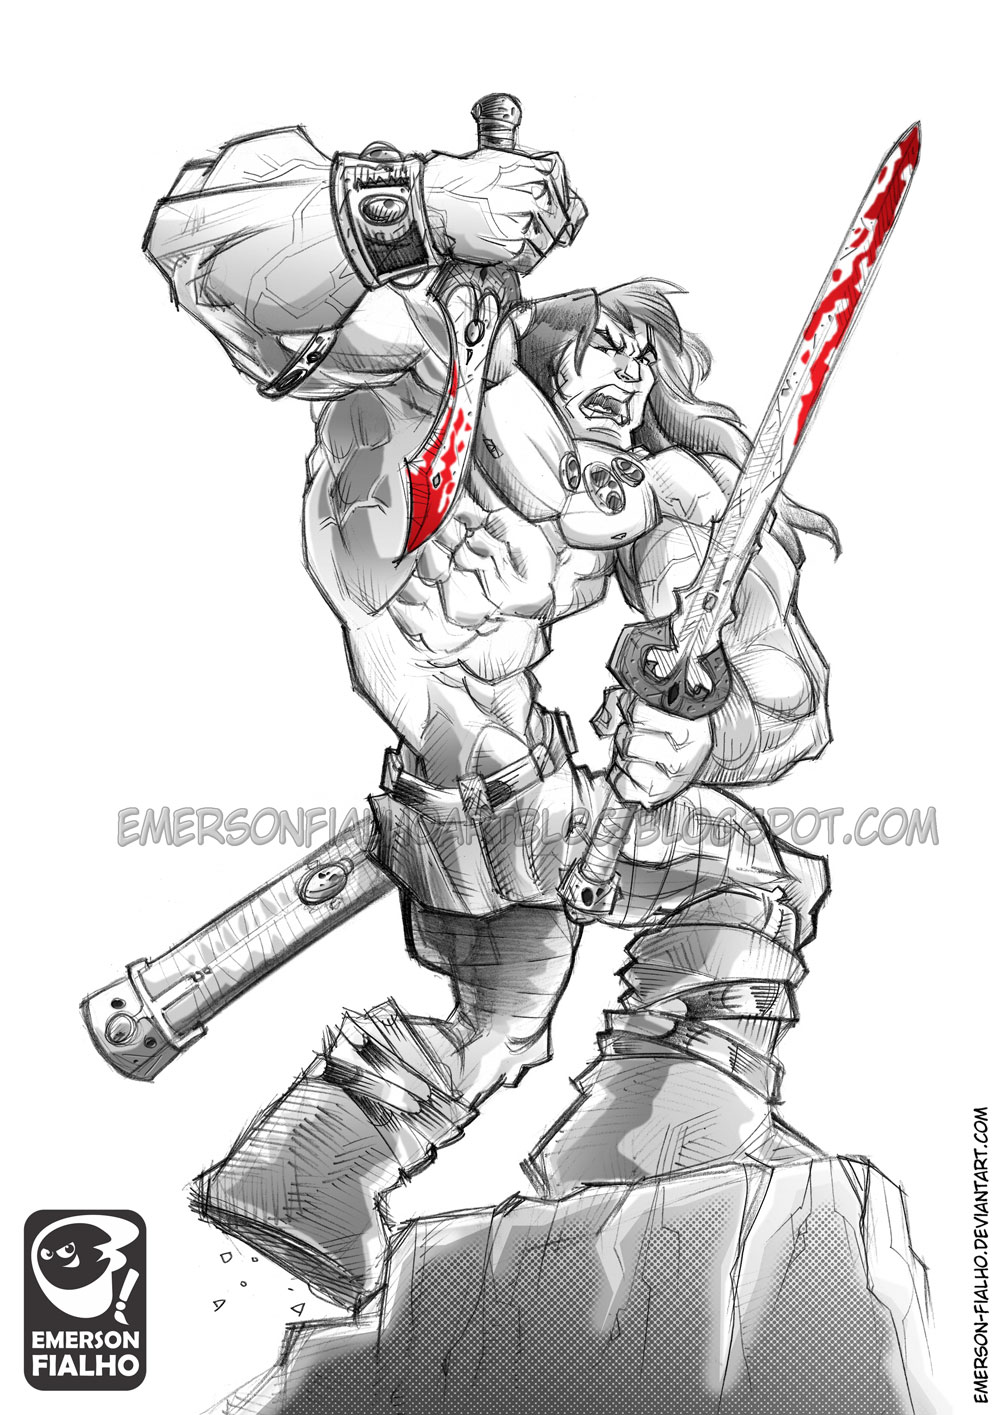 CONAN THE BARBARIAN by Emerson-Fialho